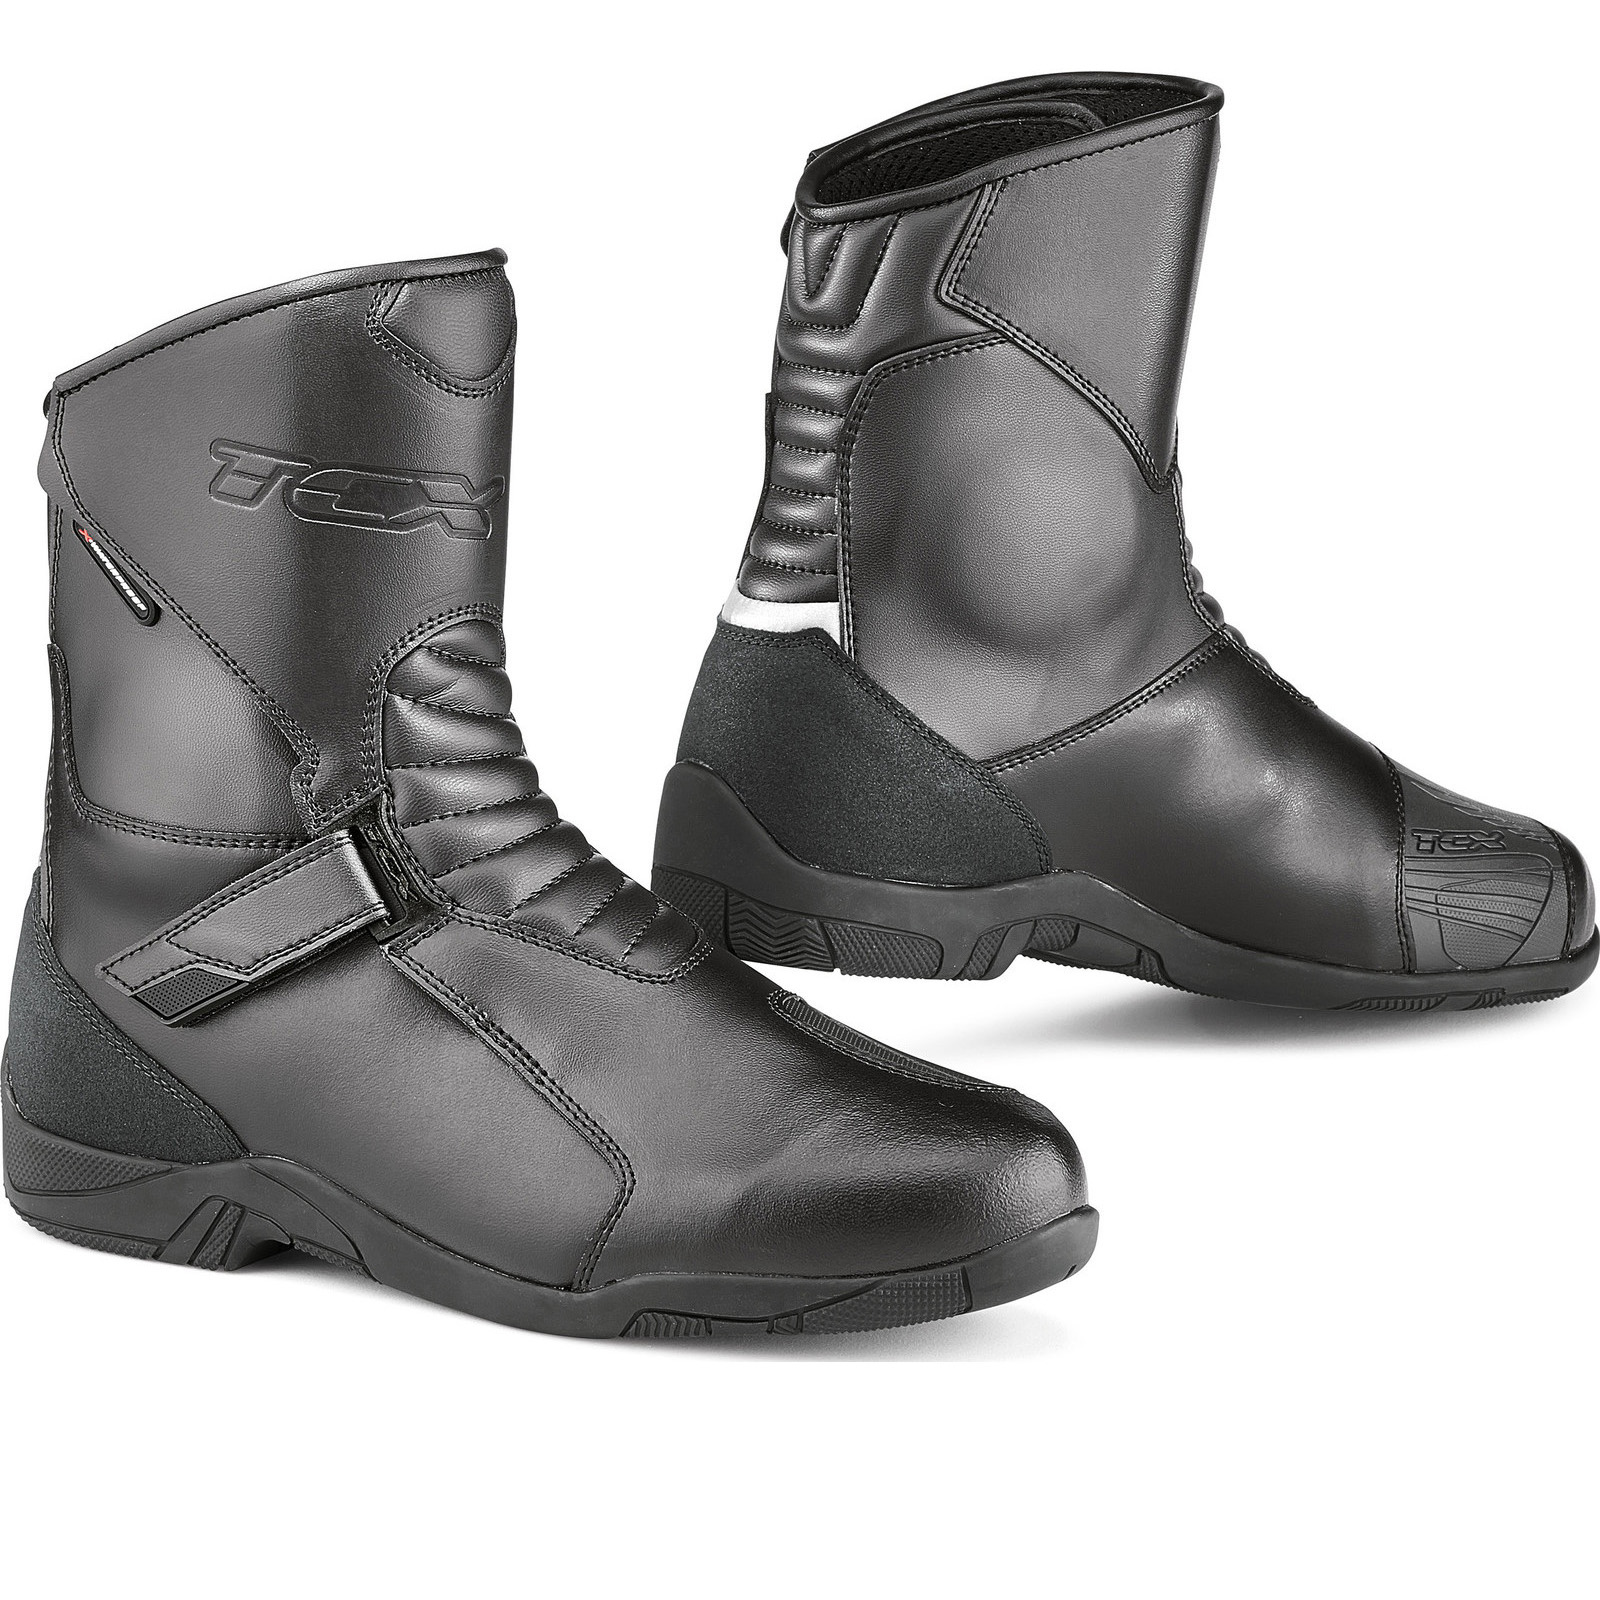 TCX Hub WP Motorcycle Boots - Clearance